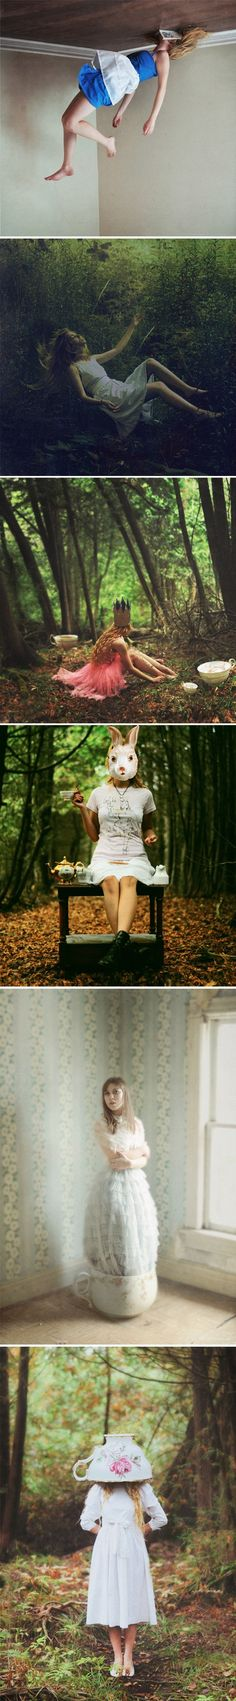 Alice in Wonderland-themed photoshoot by Lissy Laricchia